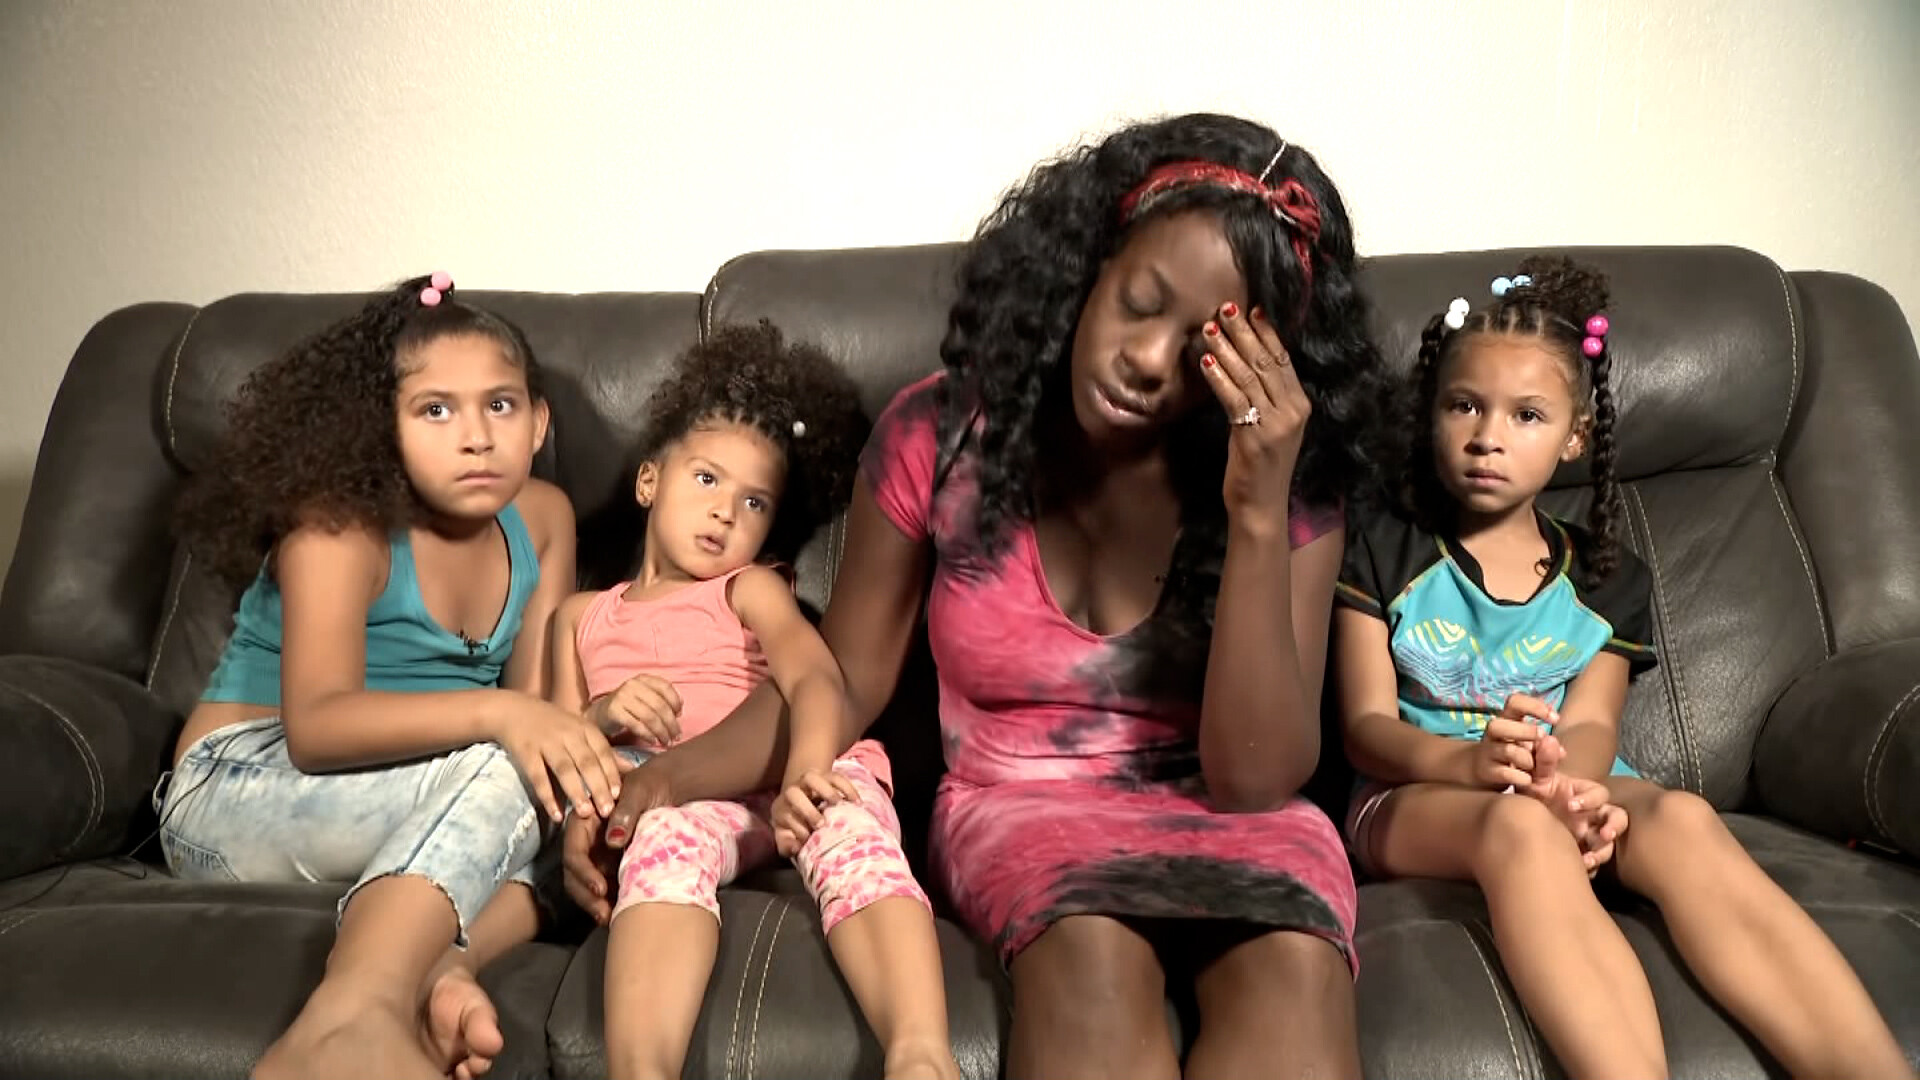 More than $170,000 raised in 24 hours for mother and three kids facing eviction